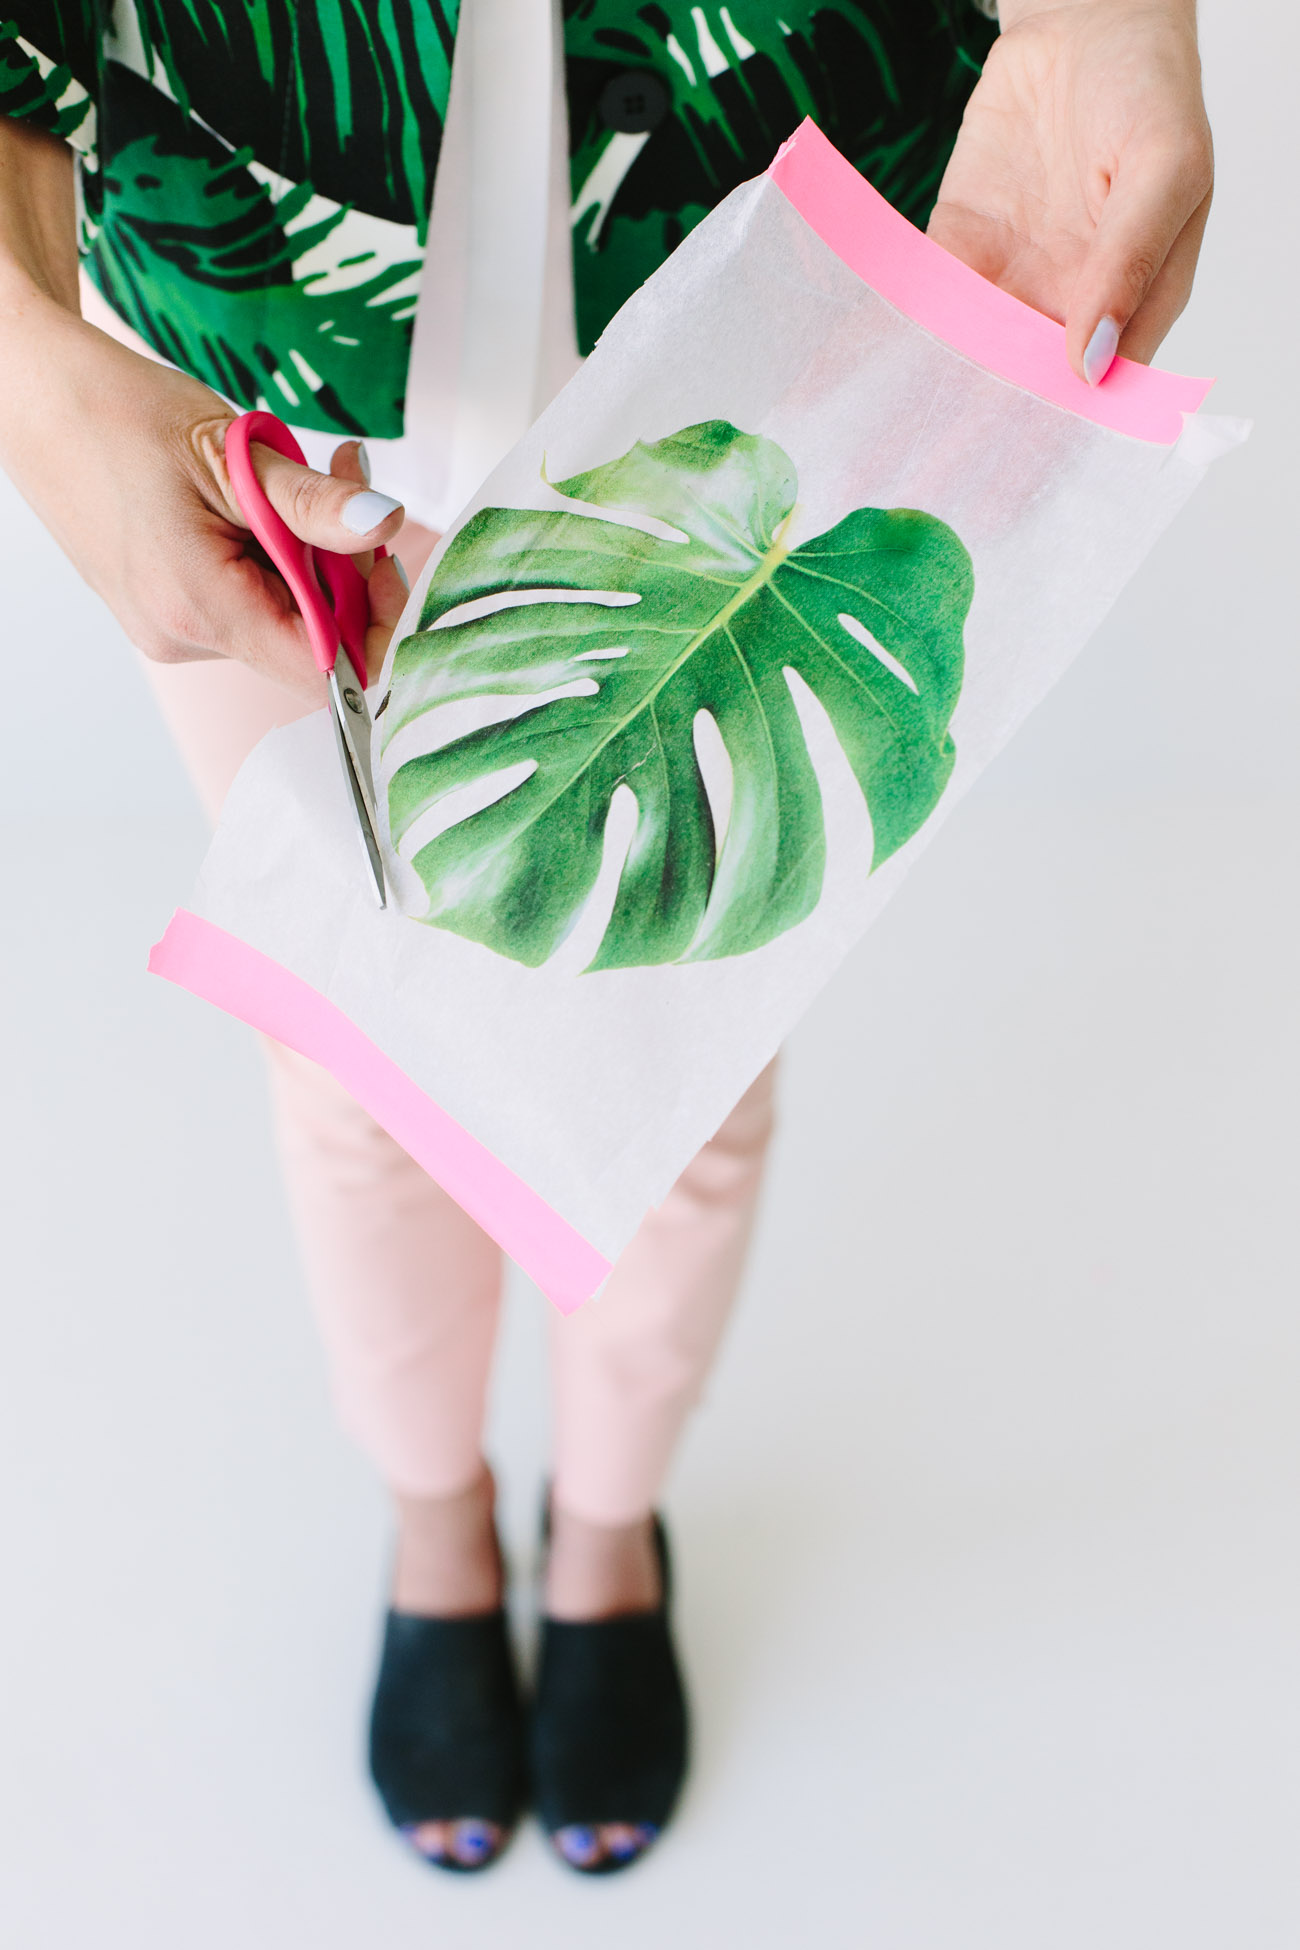 DIY-Palm-Leaf-Balloons-Step-2